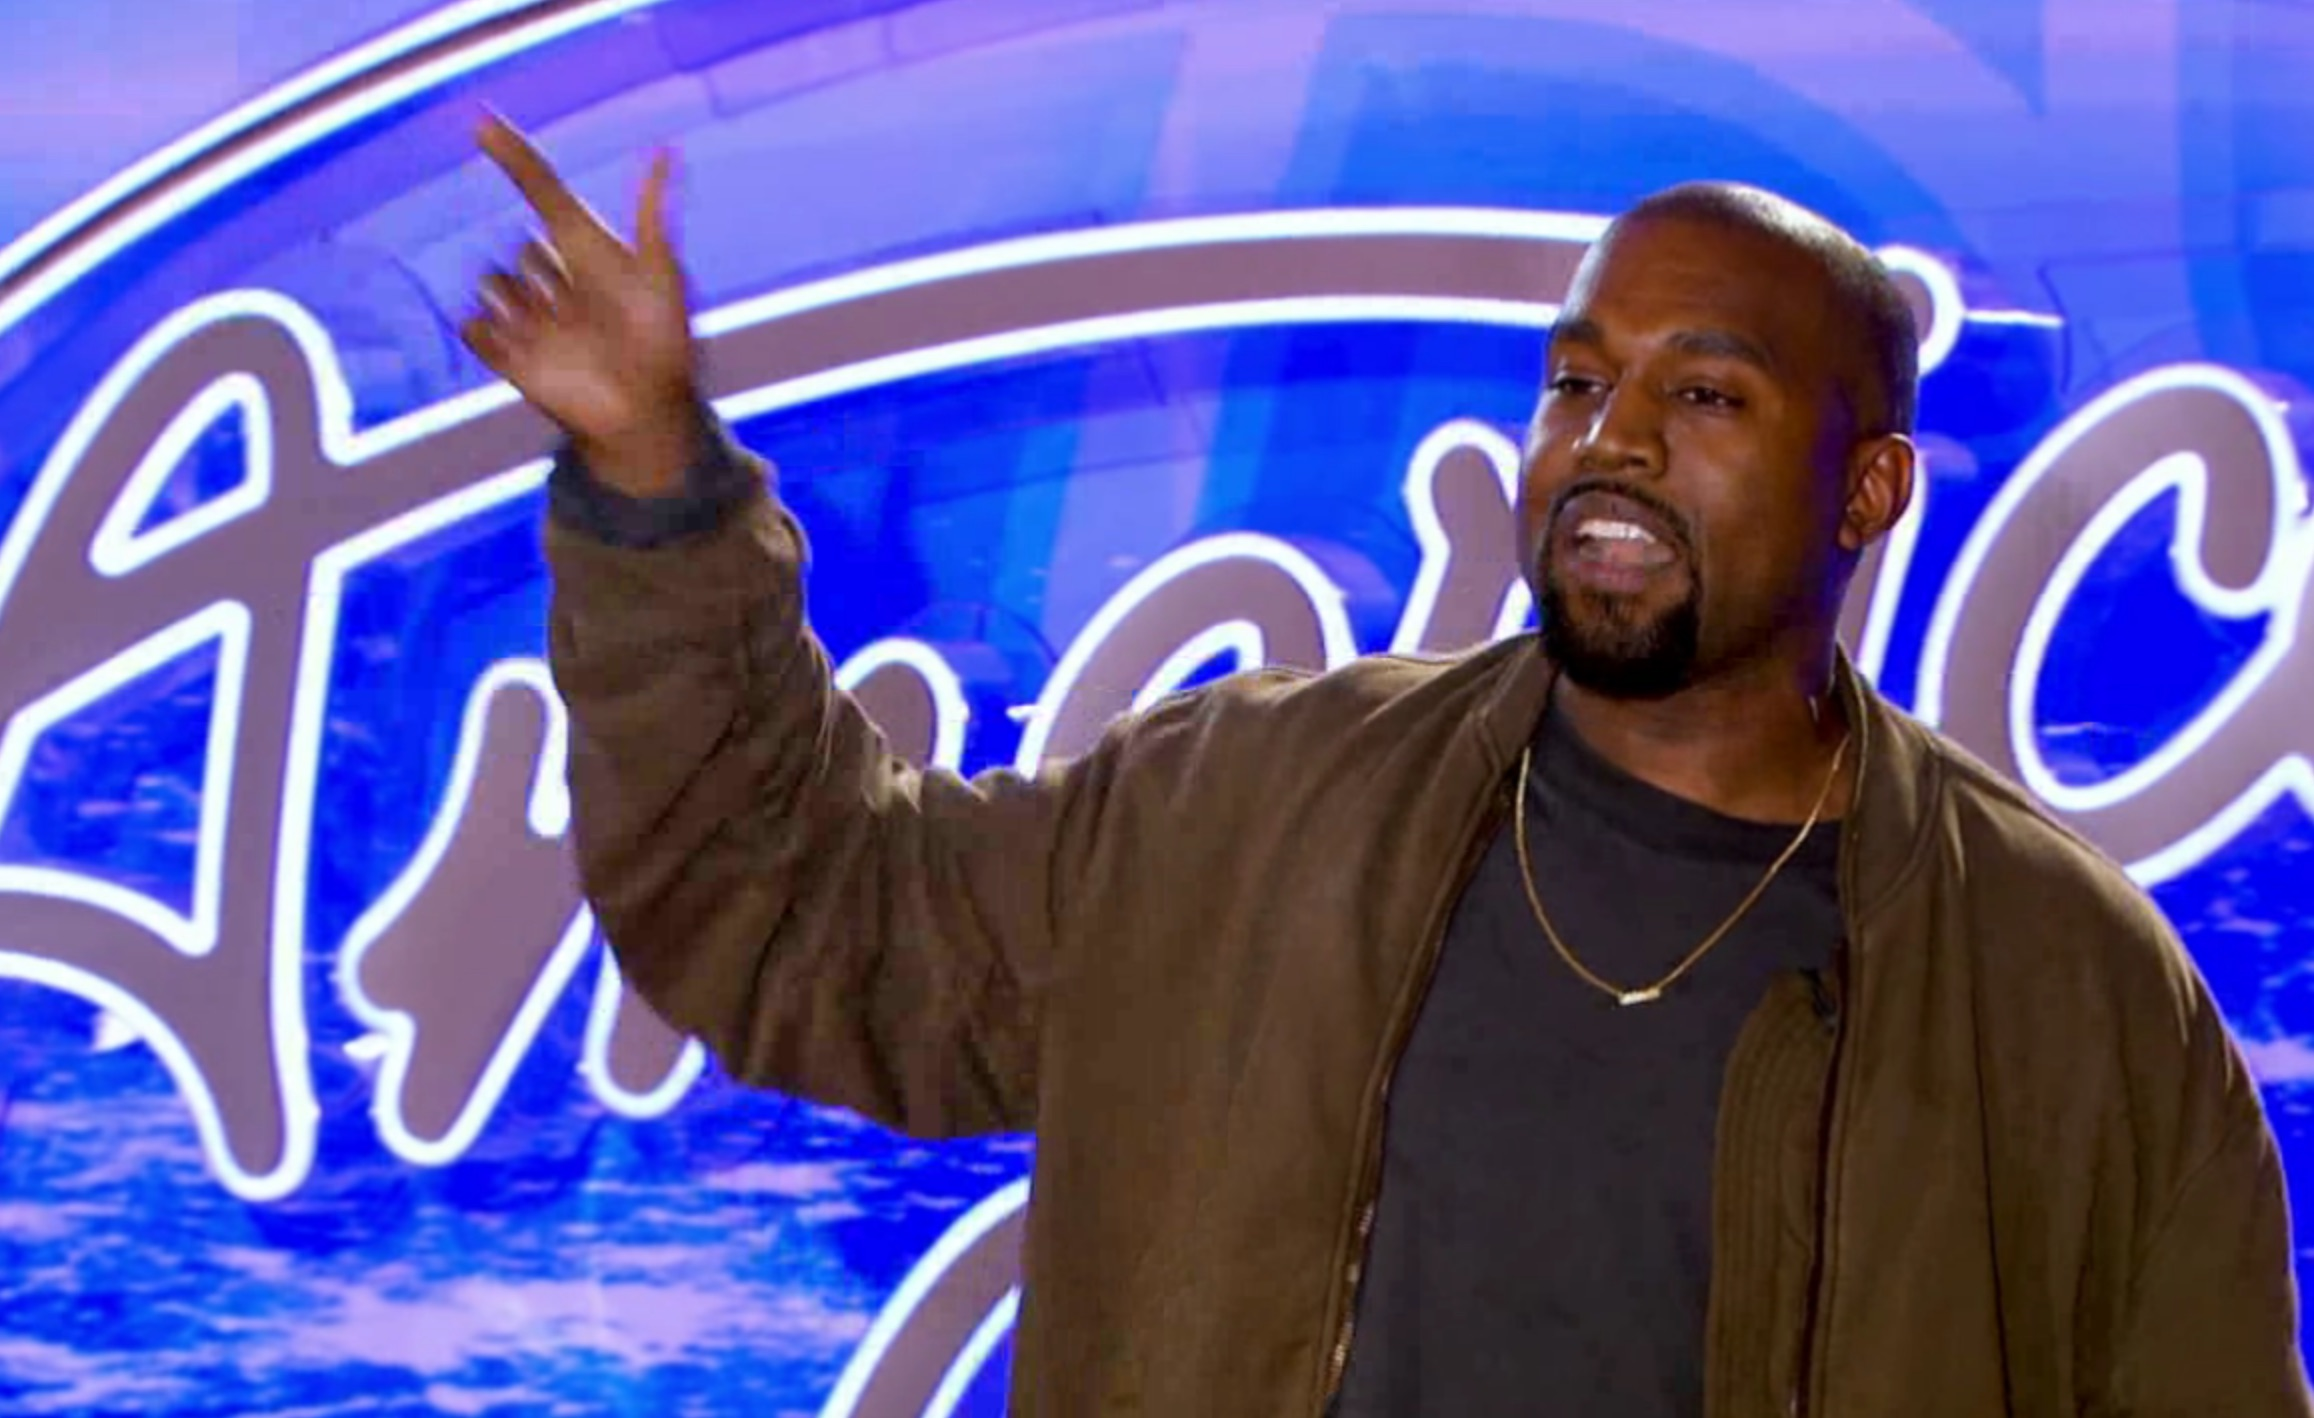 Kanye West's full 'American Idol' audition video was just released and we love it